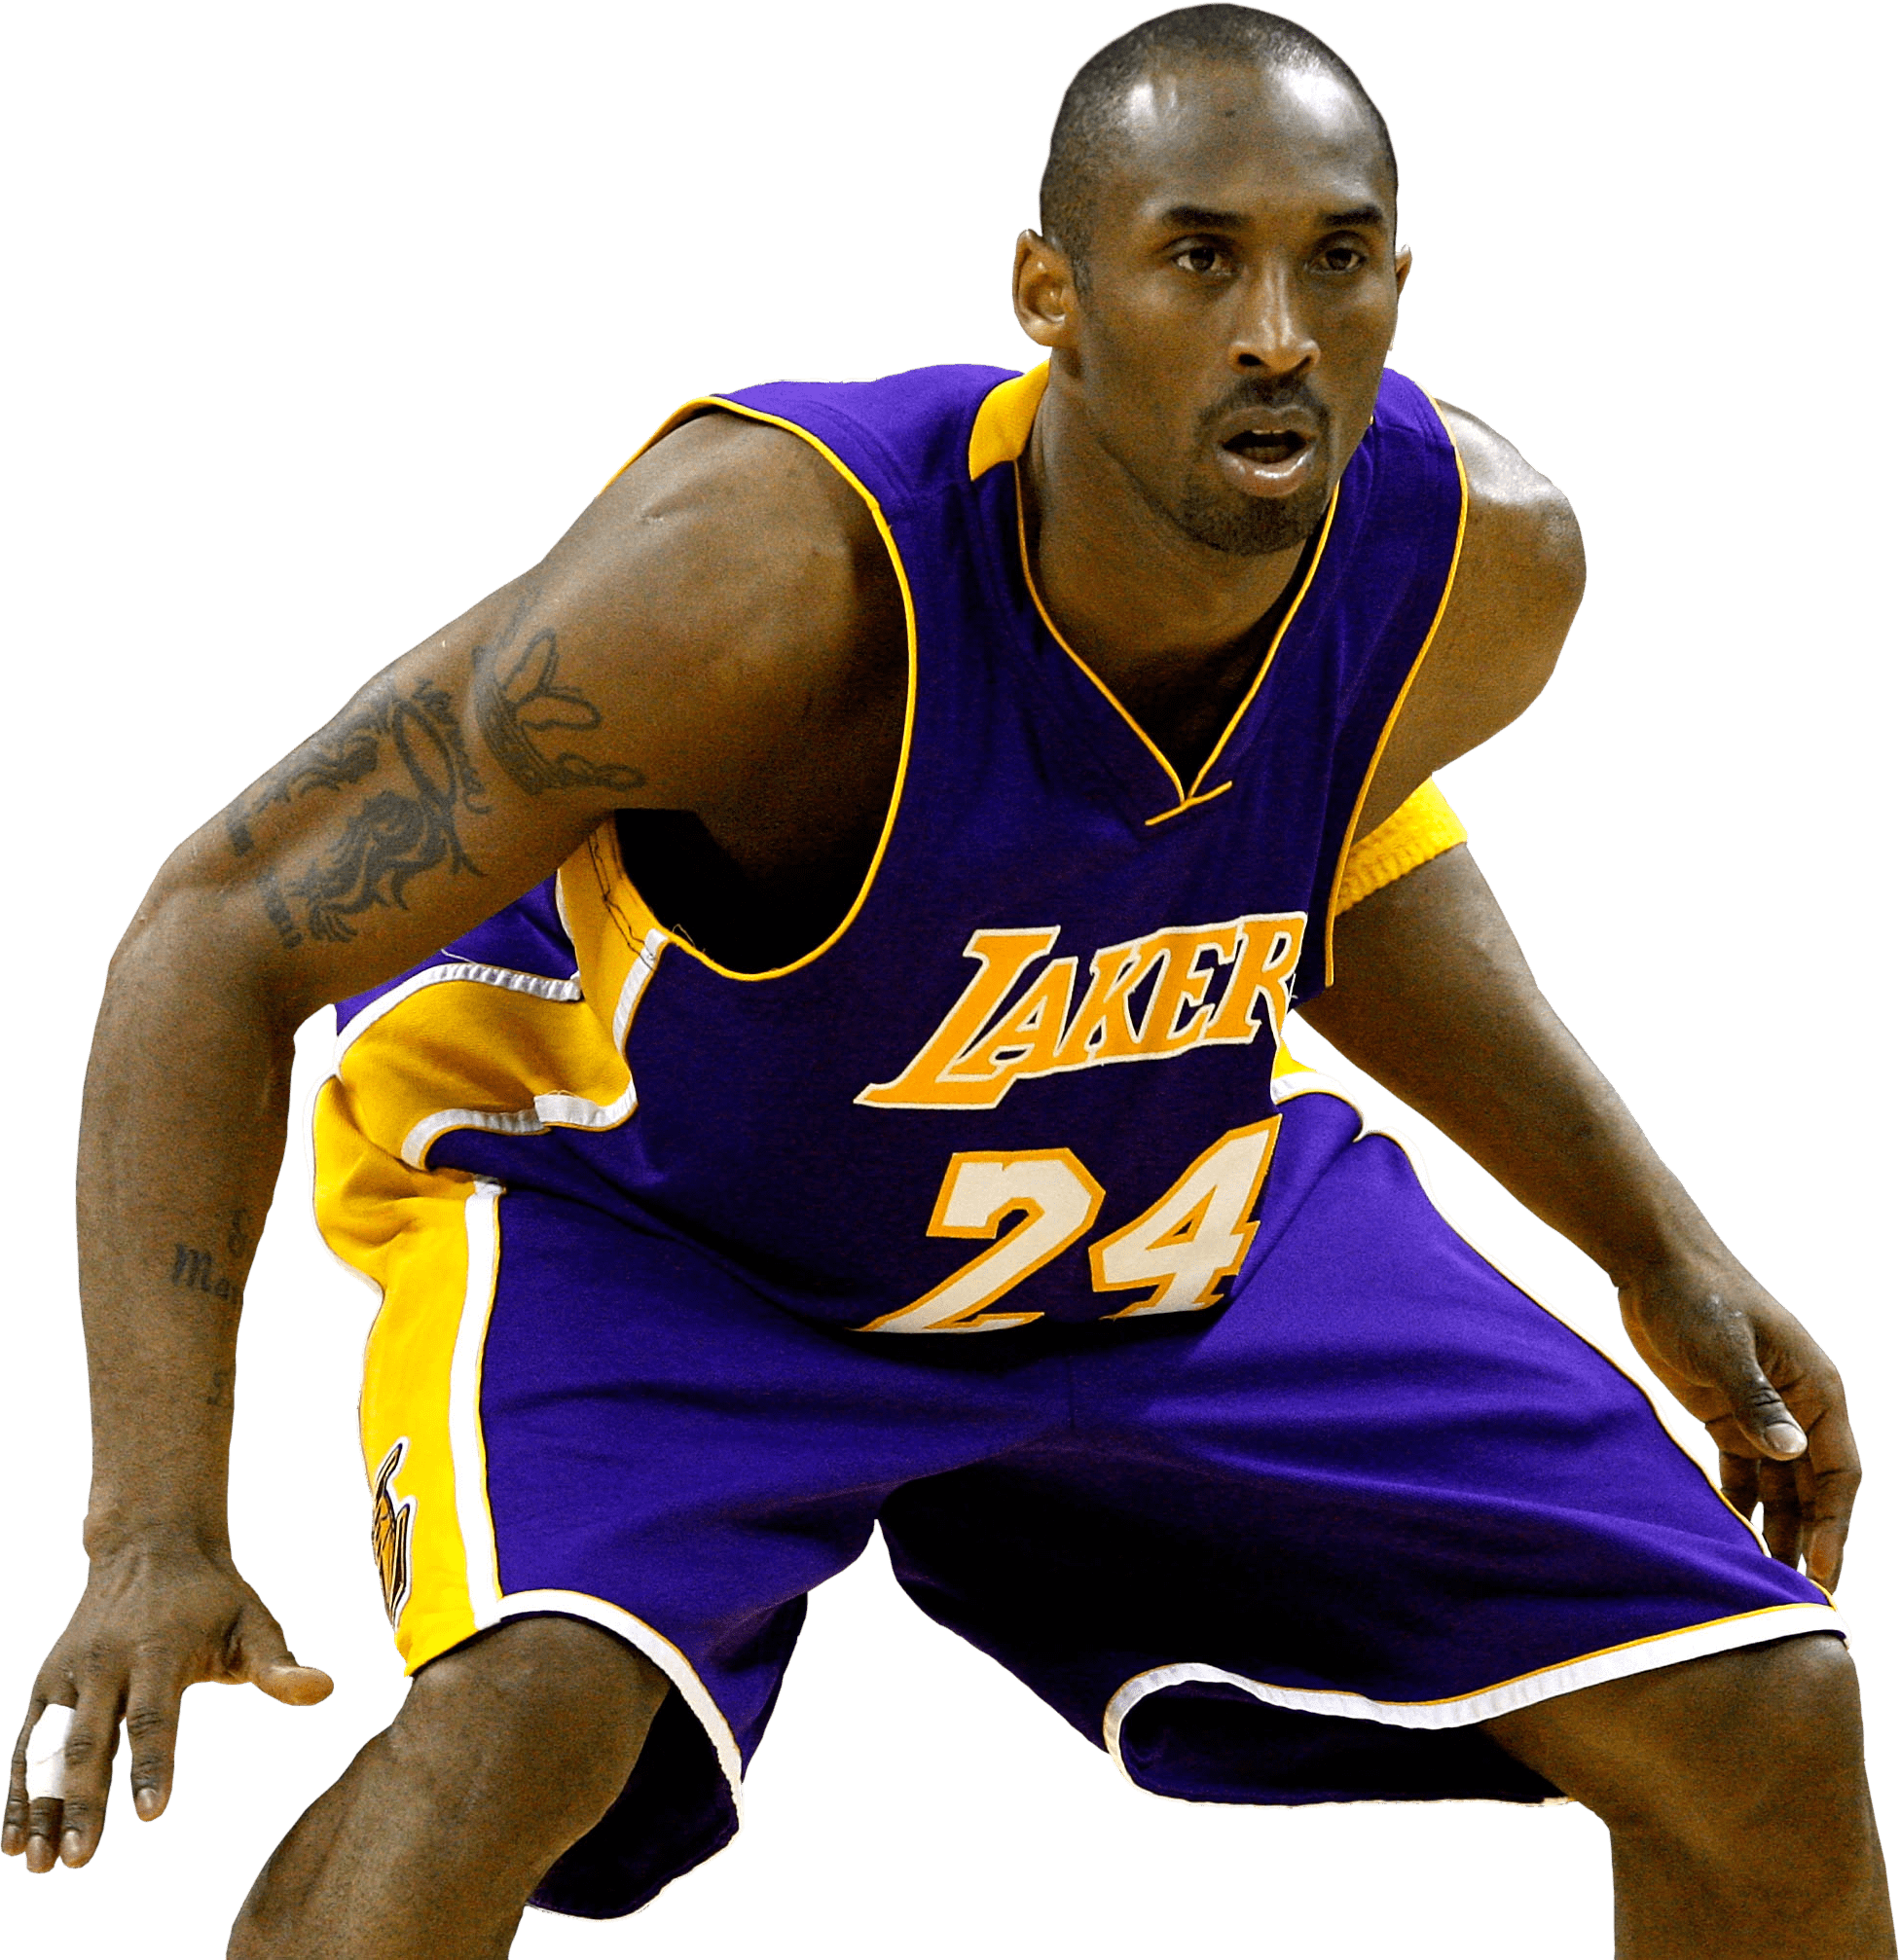 Rip Kobe Bryant Wallpapers Wallpaper Cave